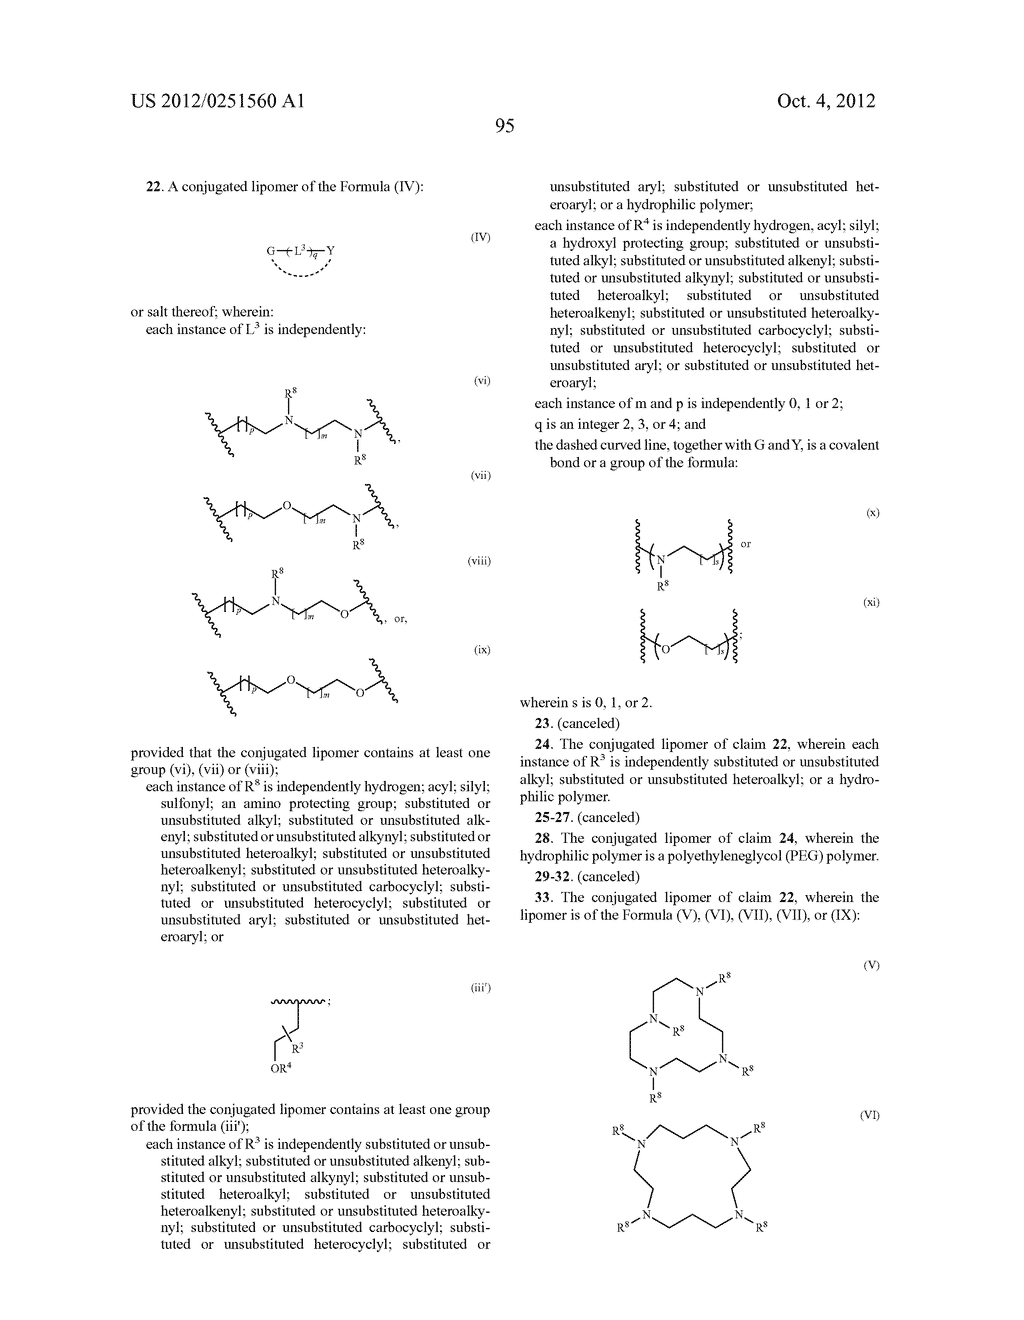 CONJUGATED LIPOMERS AND USES THEREOF - diagram, schematic, and image 131